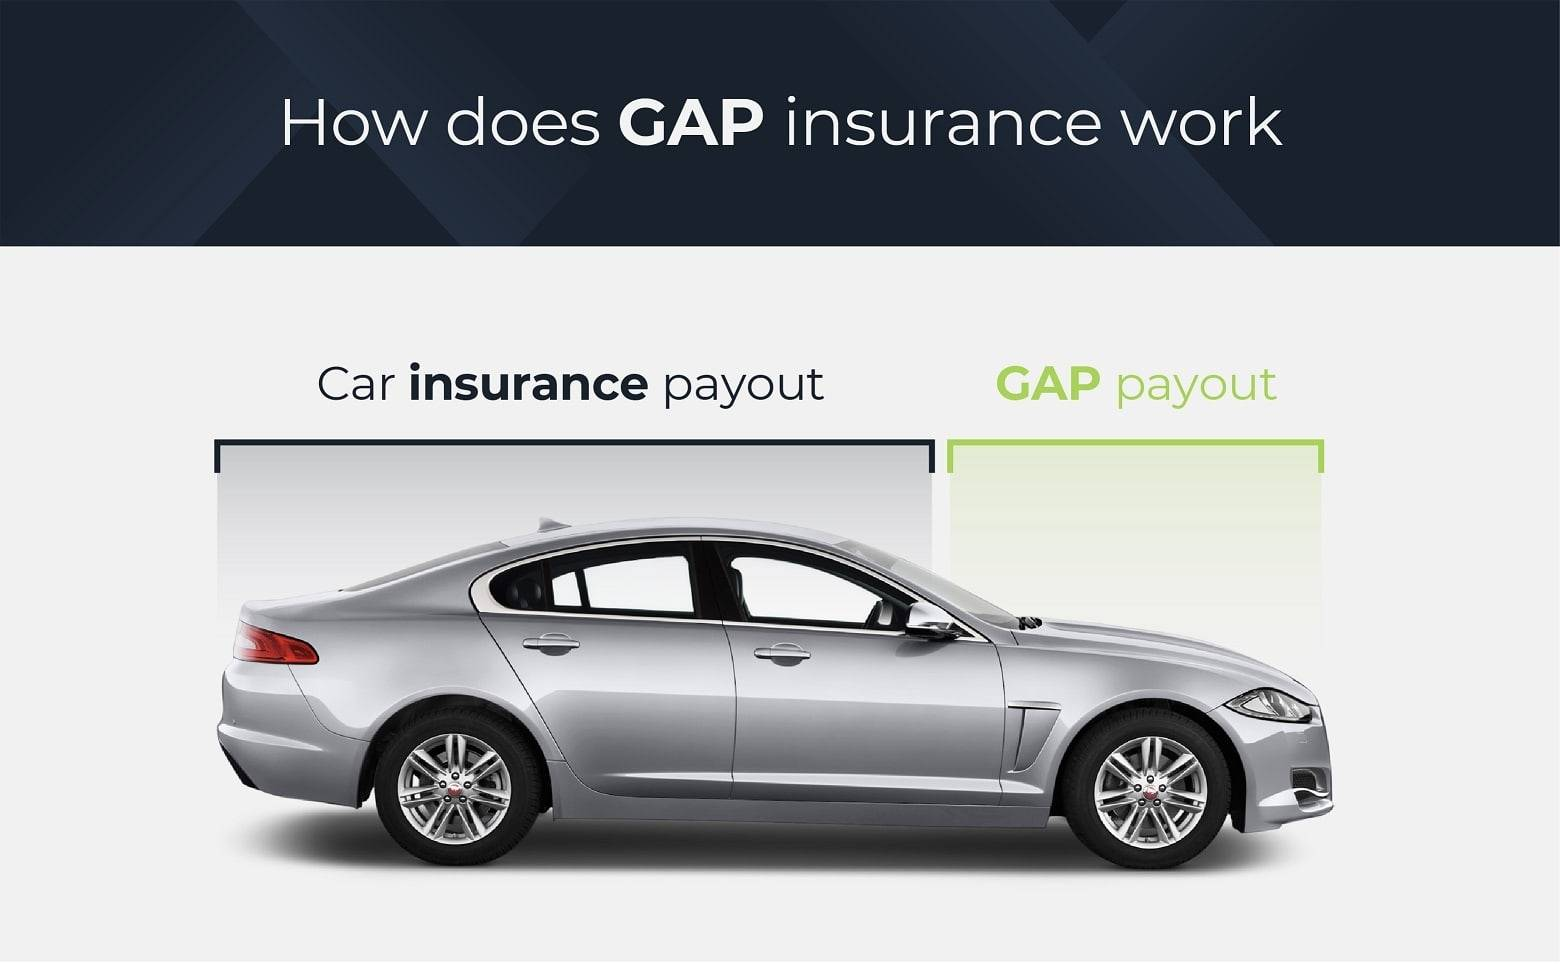 How does gap insurance work?